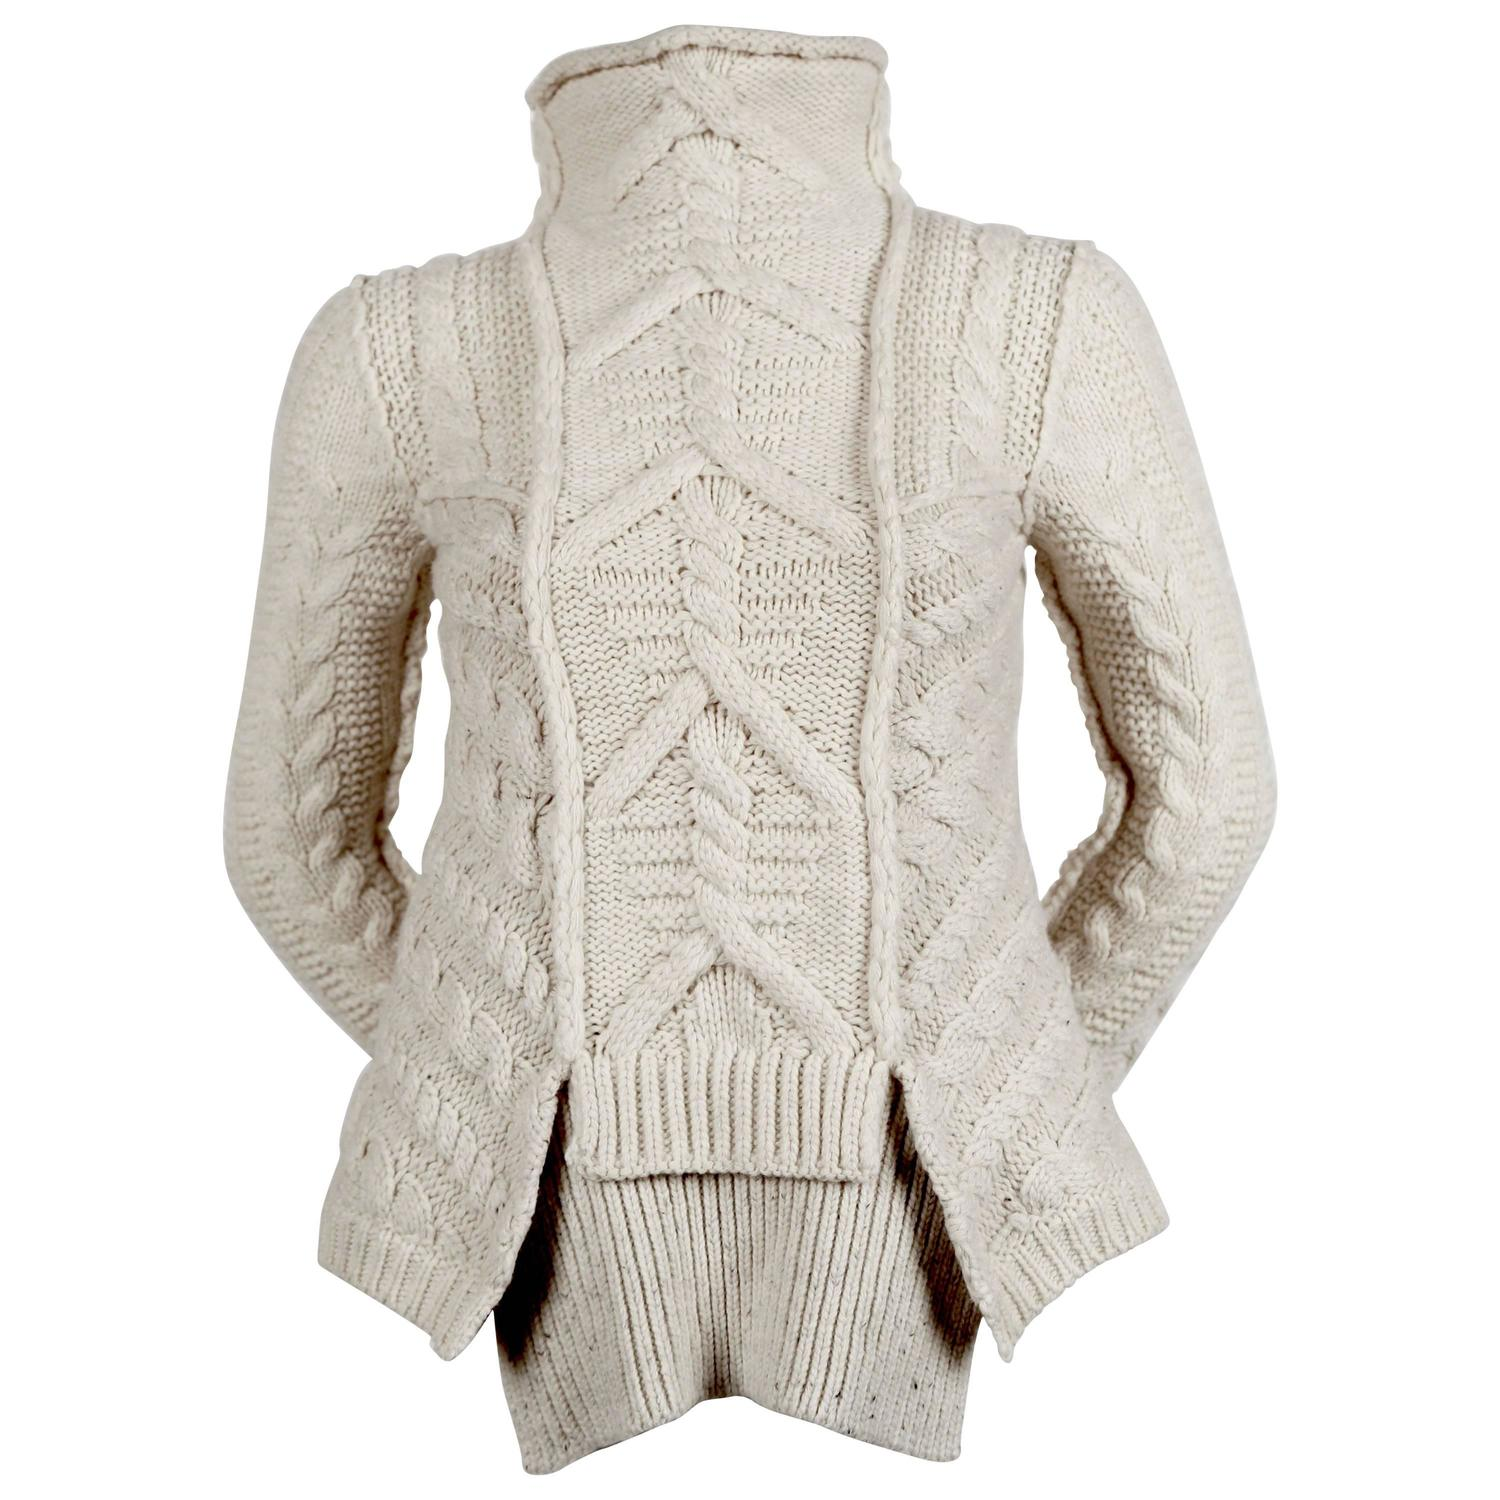 rare CELINE by PHOEBE PHILO wool cable knit sweater with ...